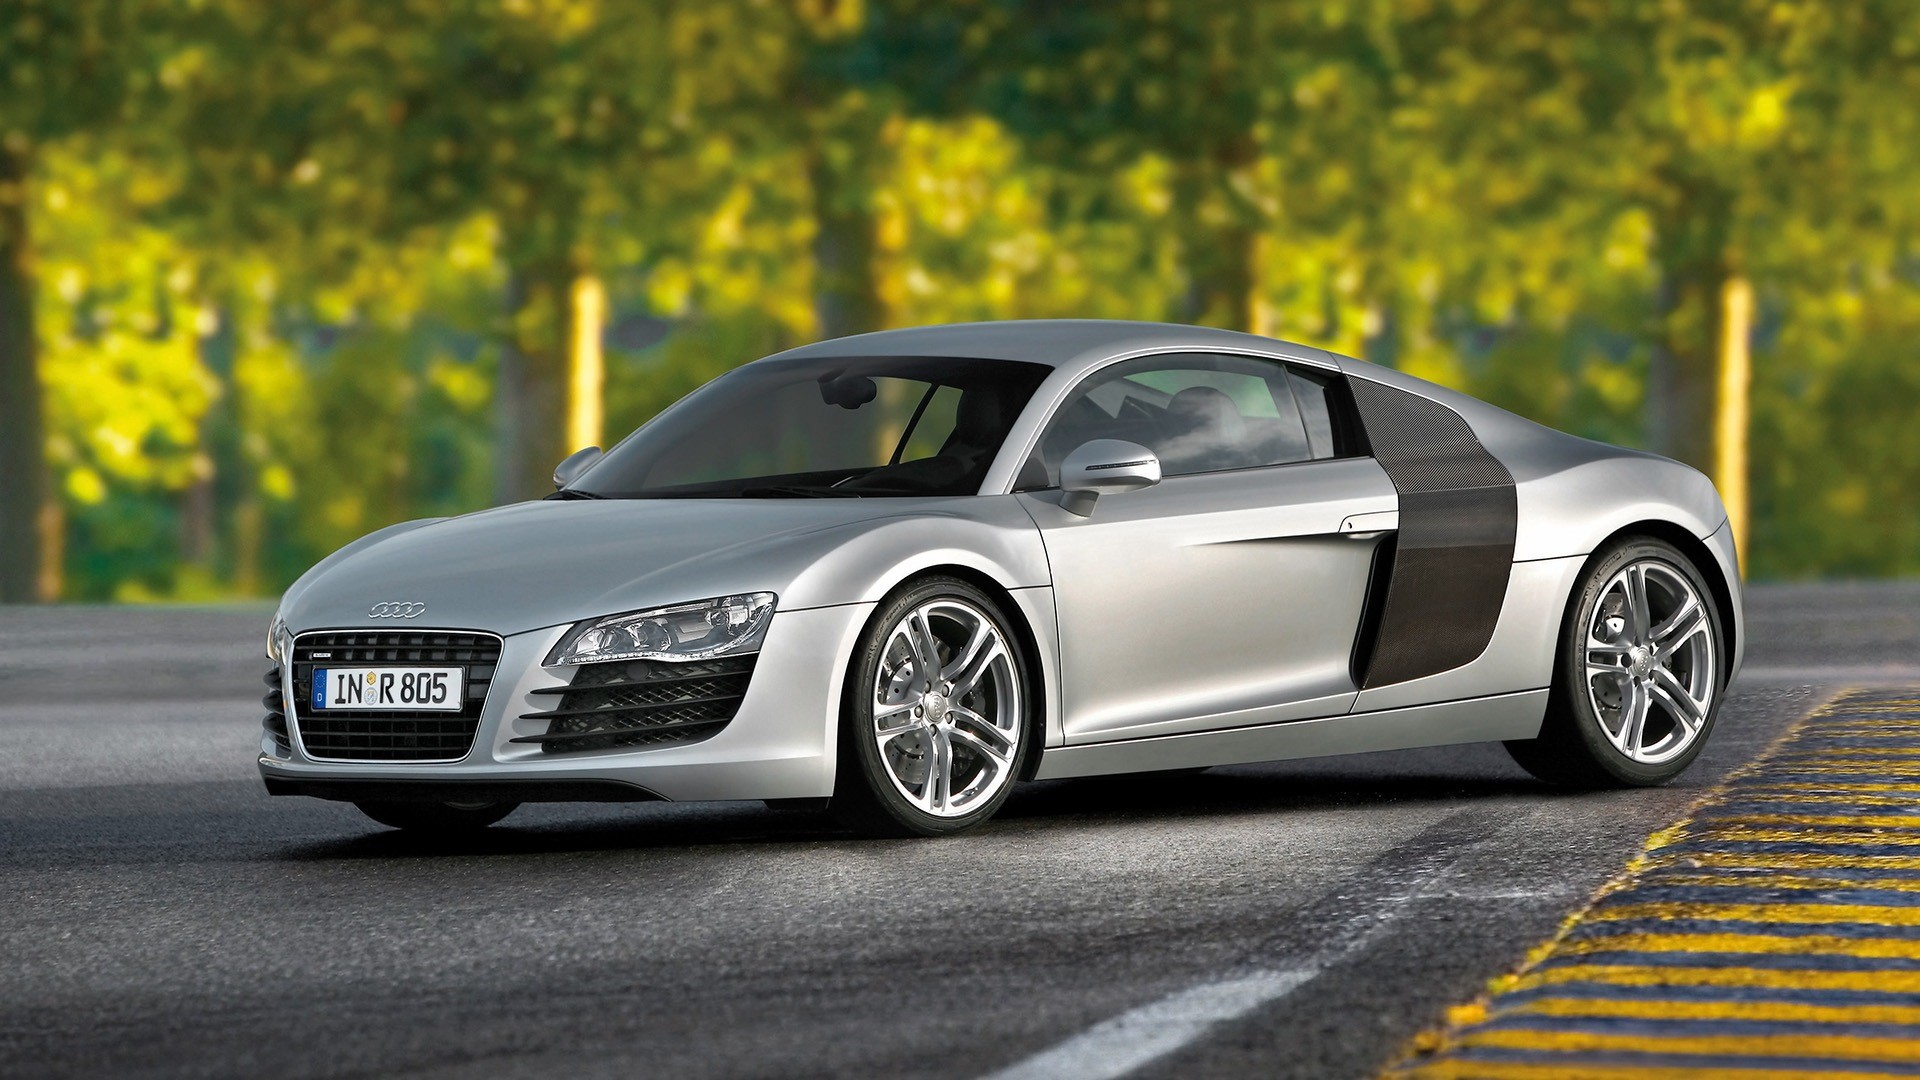 1920x1080 Car wallpapers: Audi R8 | Car Humor